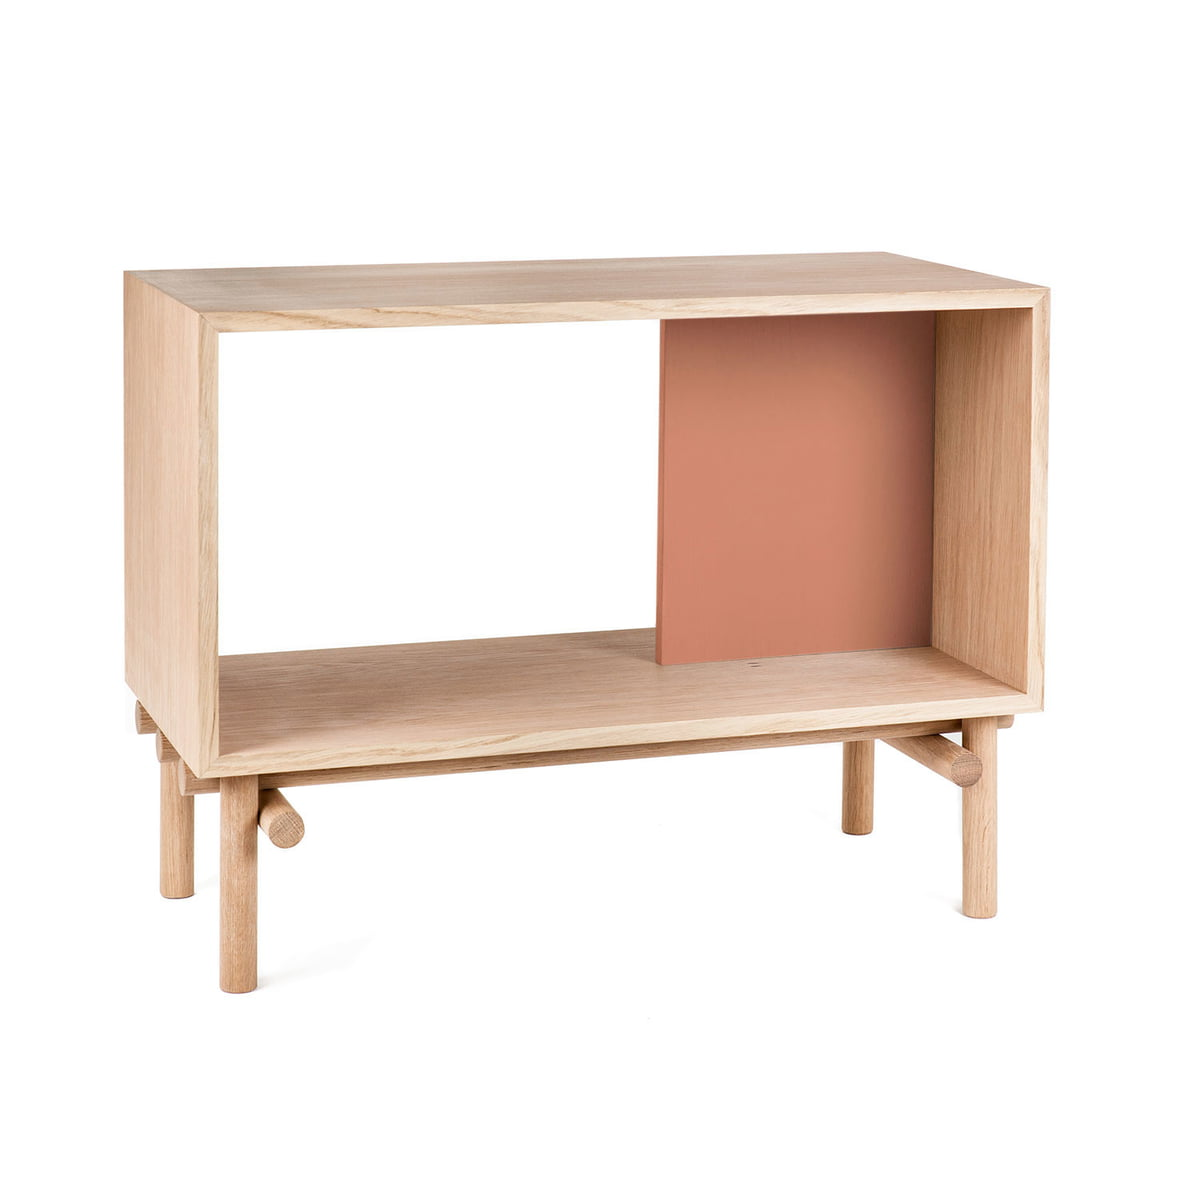 Buy the edgar shelf by hart in our shop for Sideboard untergestell